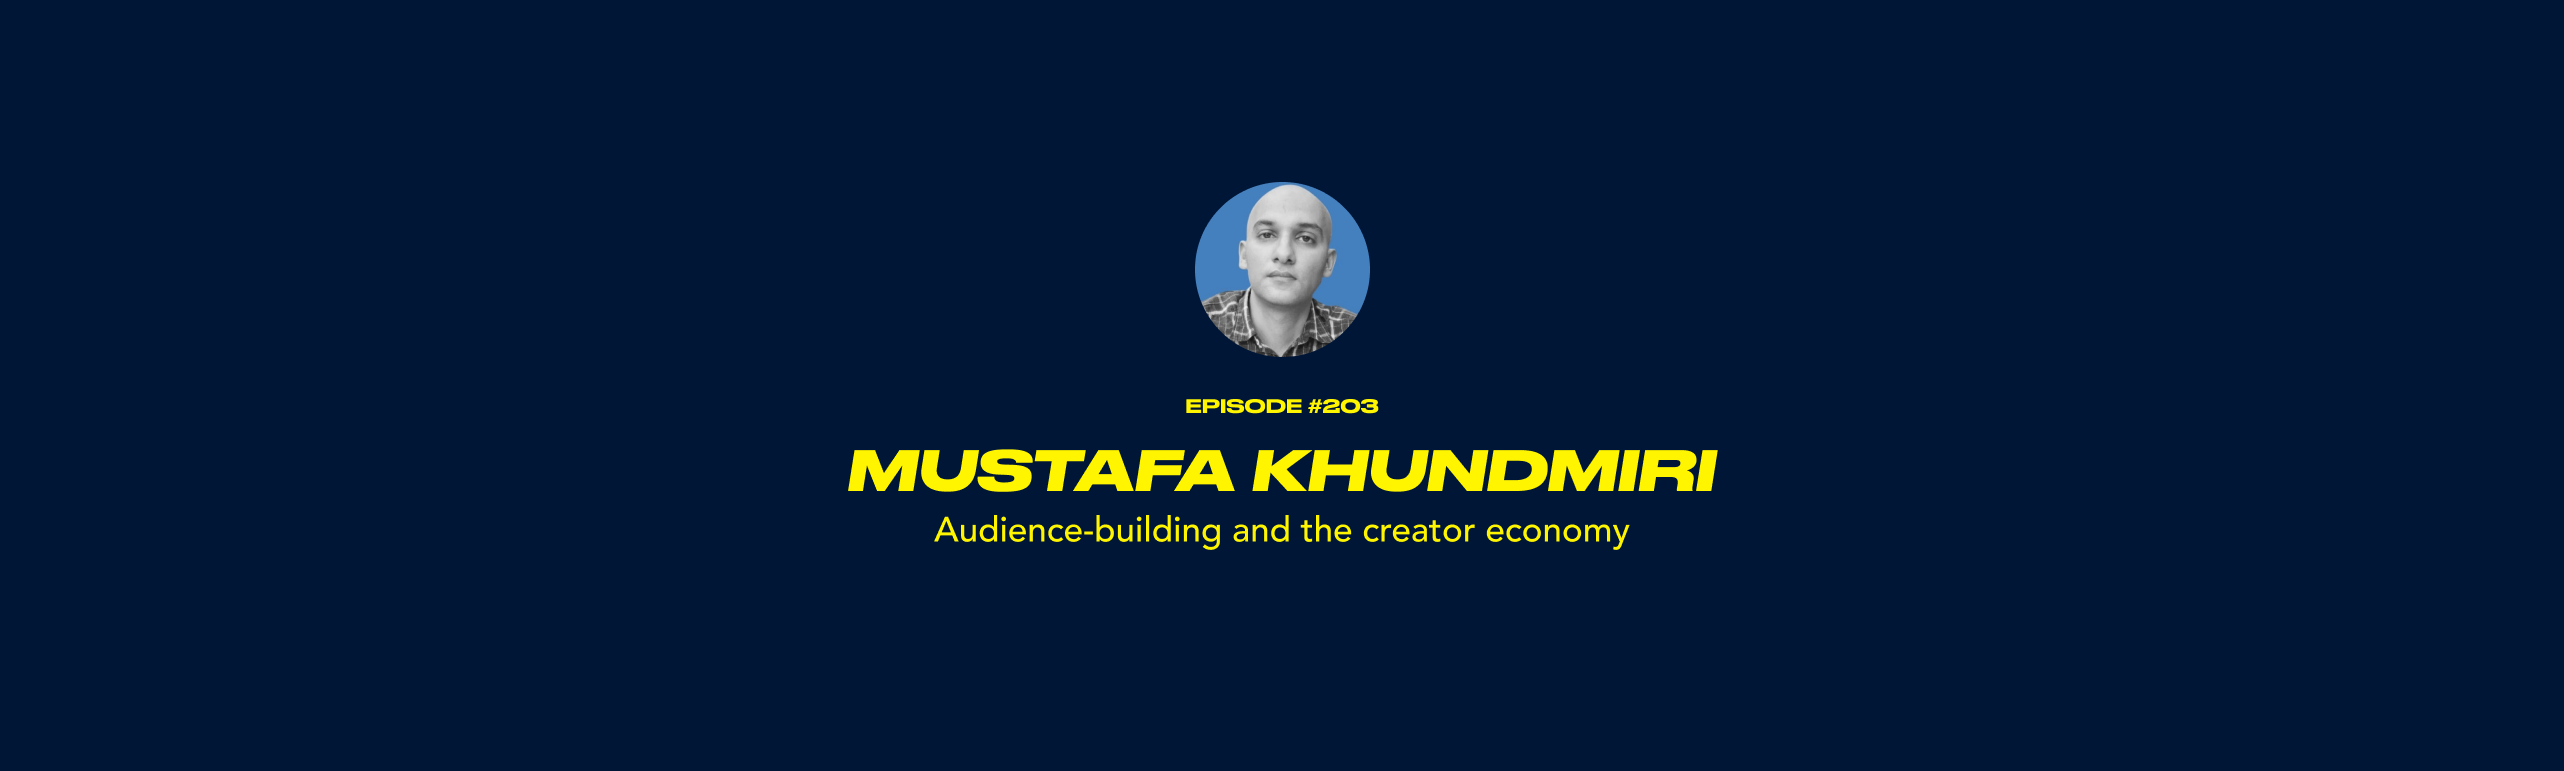 Mustafa Khundmiri - Audience-building and the creator economy